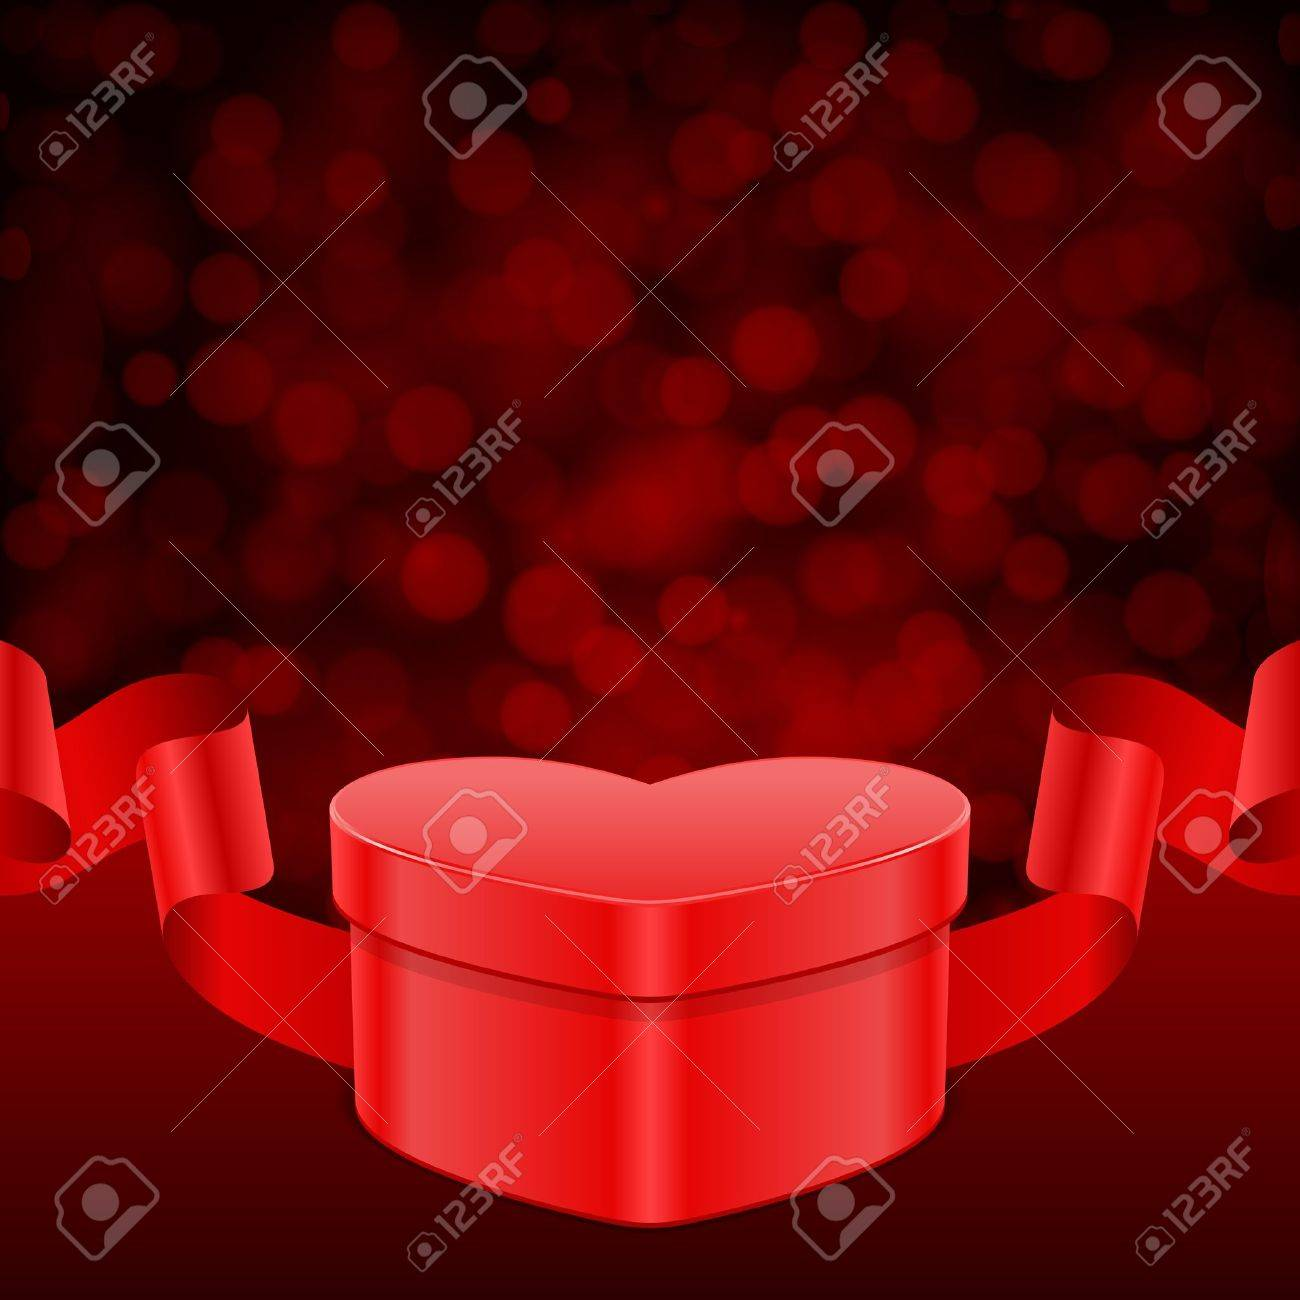 Valentine day vector background gift heart with ribbon and light valentine day vector background gift heart with ribbon and light 11895639 negle Gallery